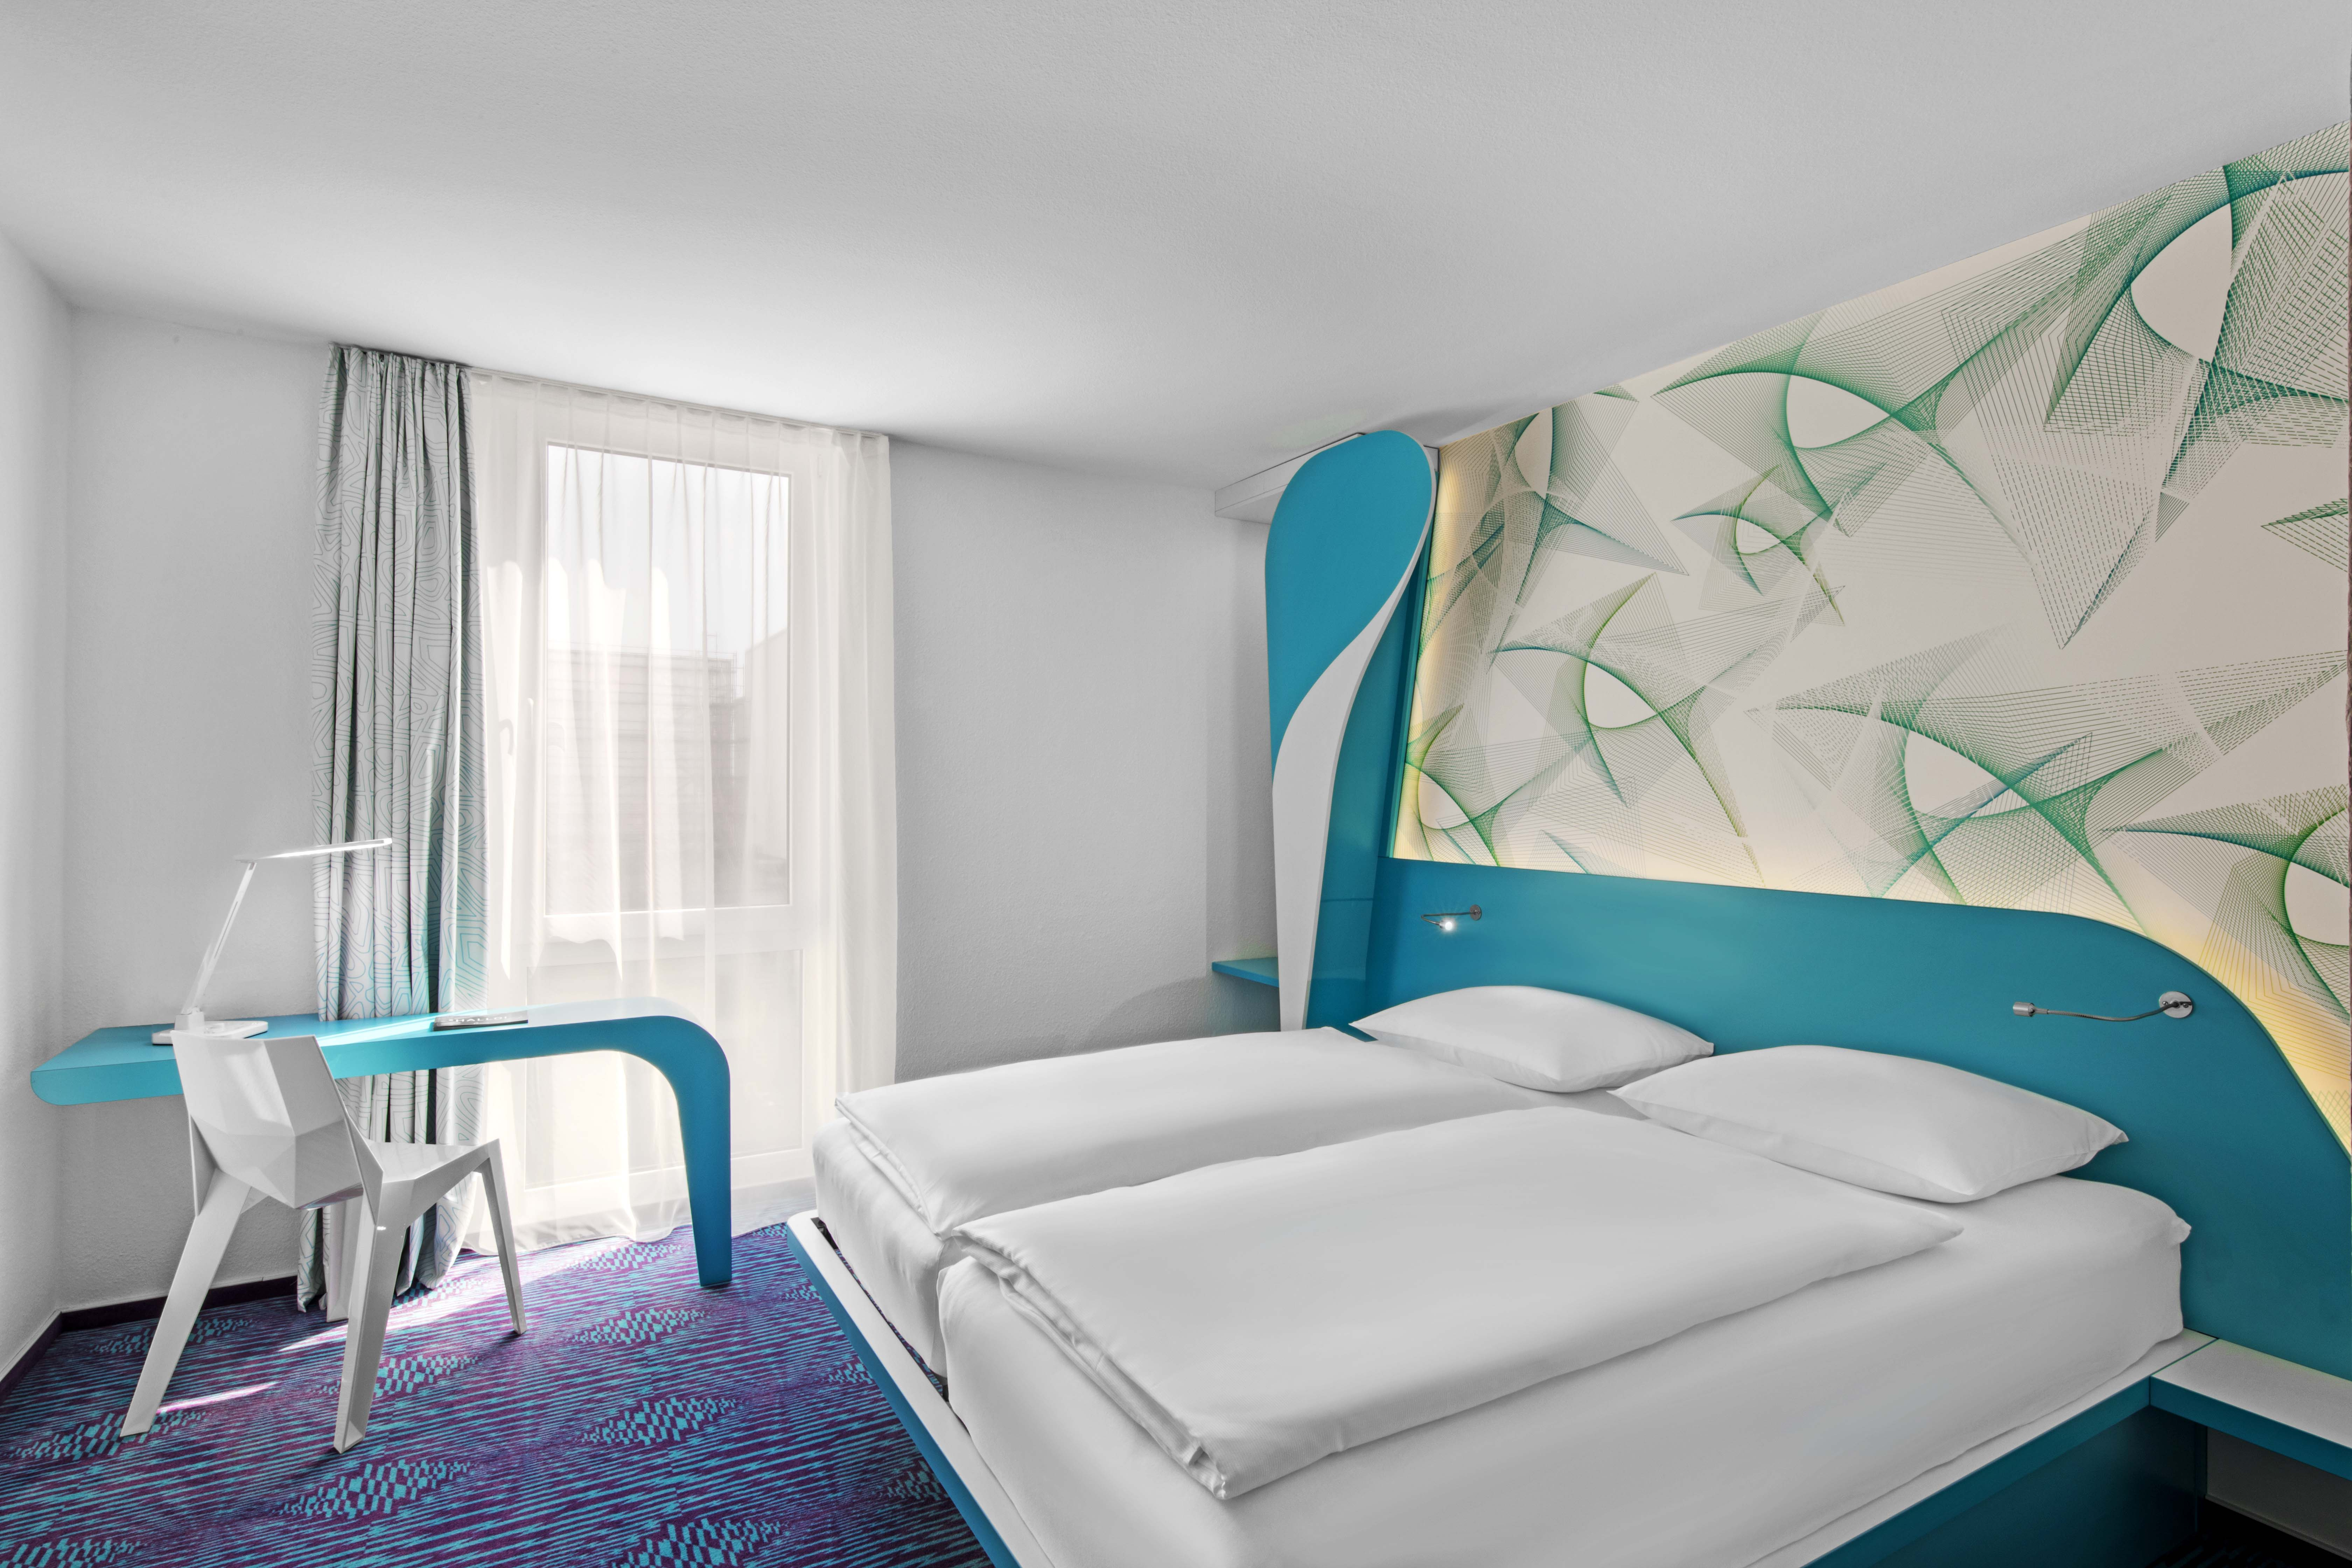 prizeotel Hamburg-St. Pauli - Your room